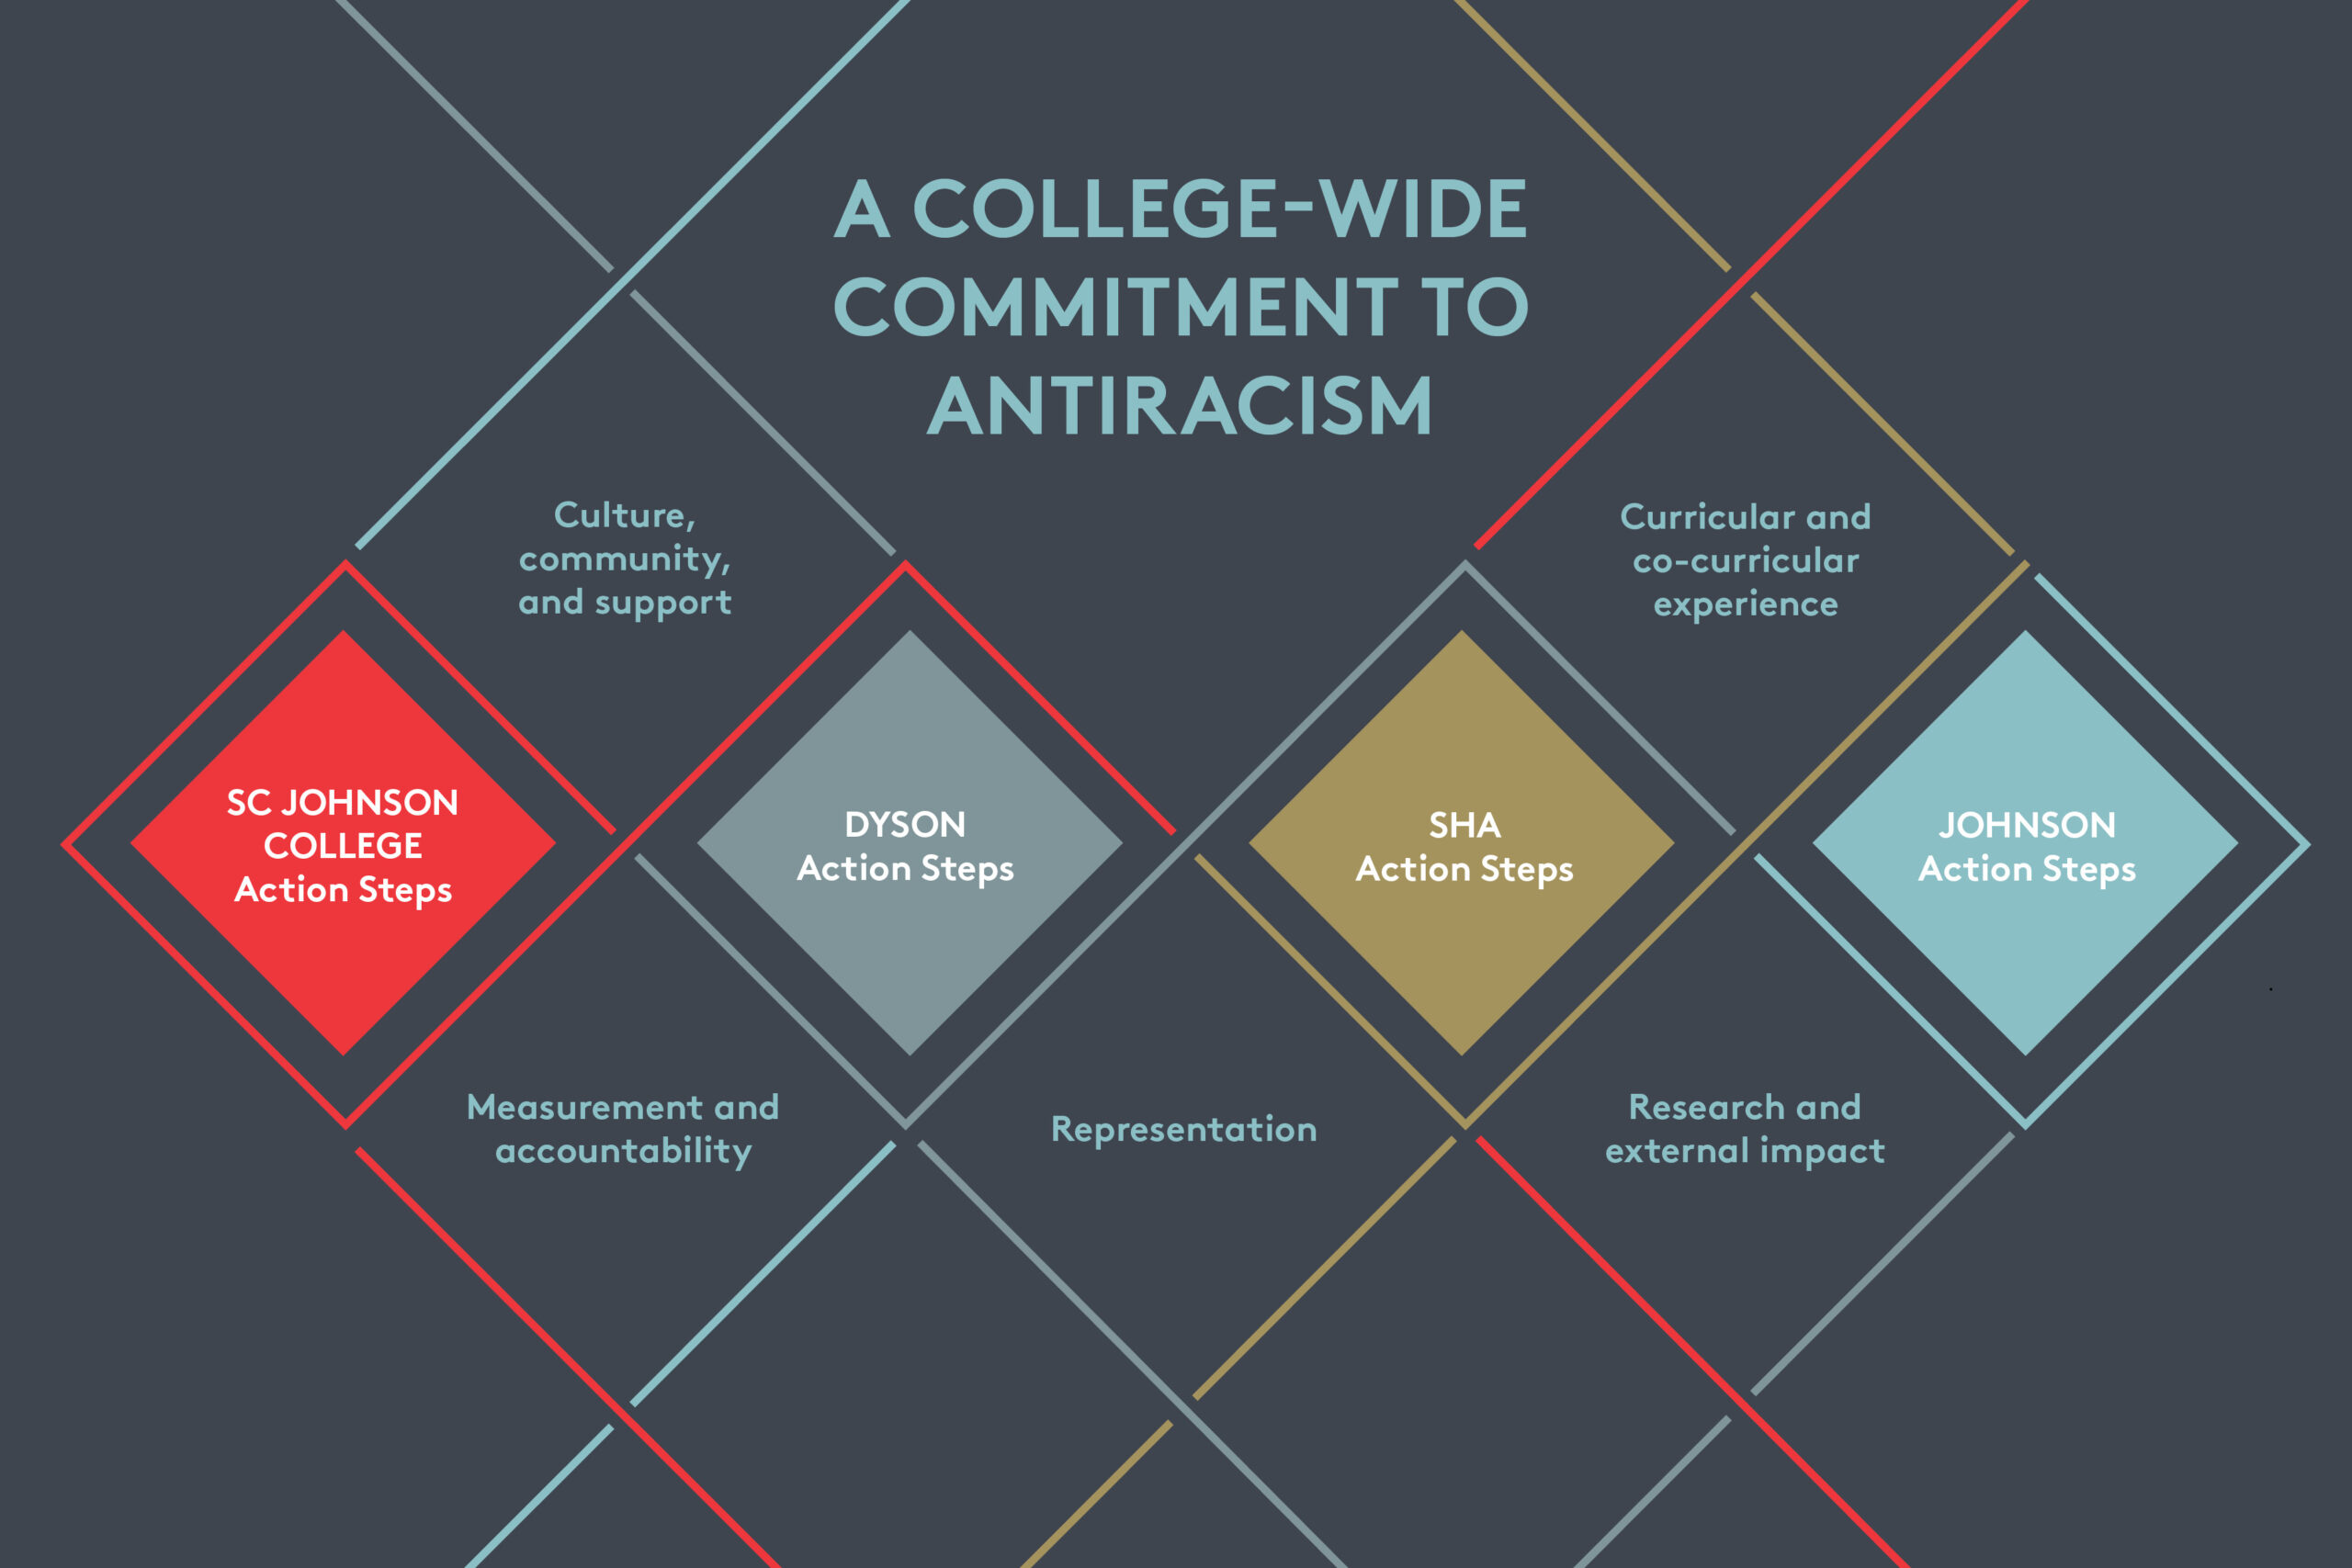 Infographic about College of Business commitment to antiracism